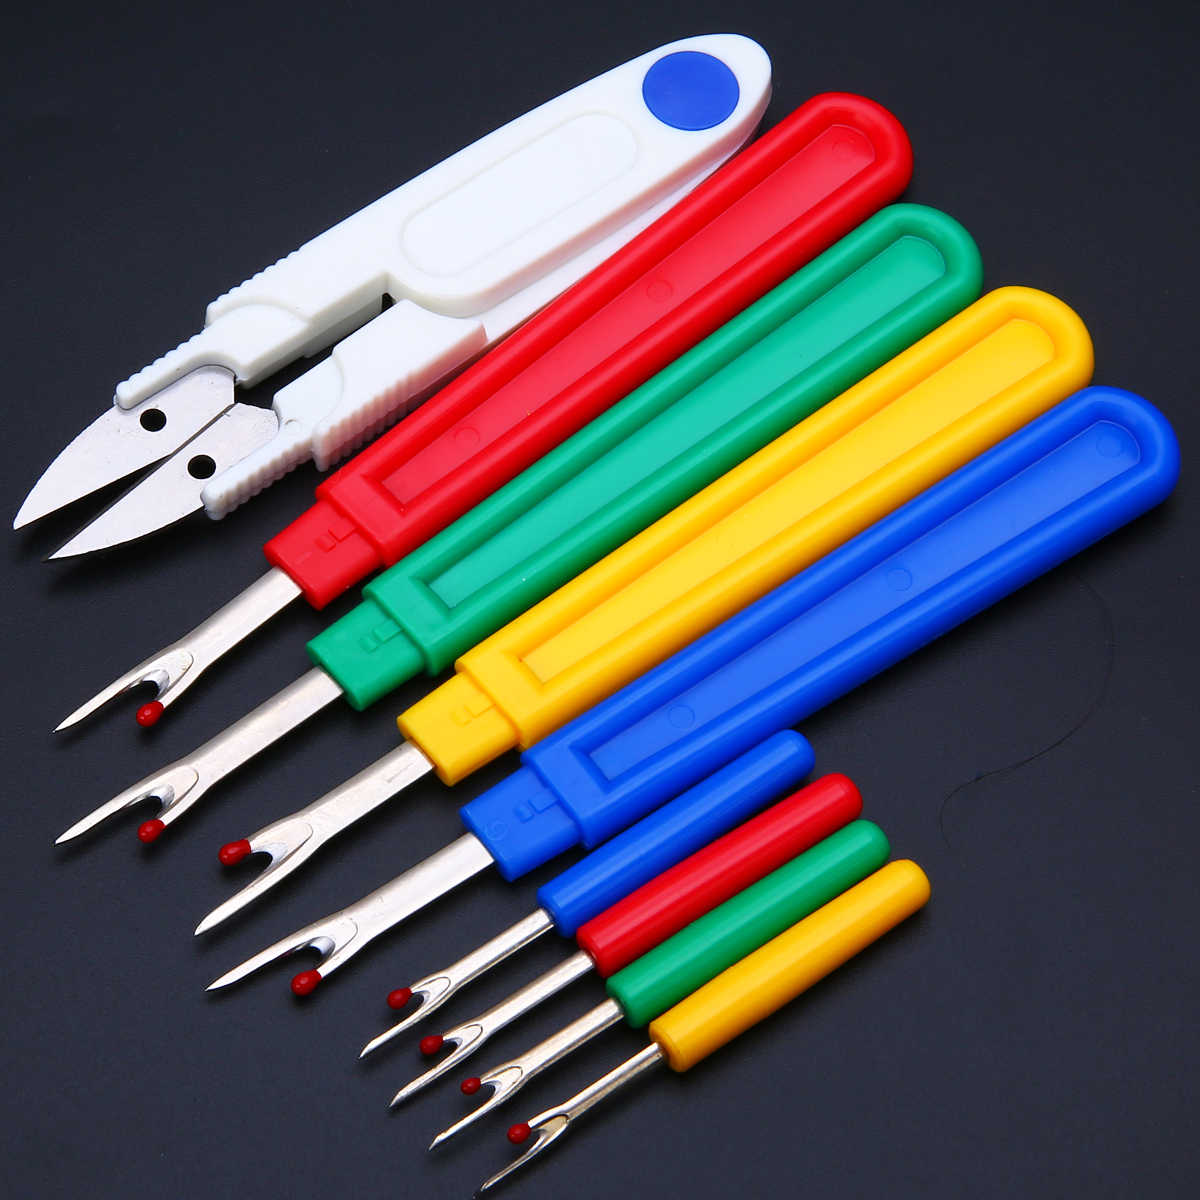 9pcs Seam Ripper Stitch Unpicker With Plastic Handle Thread Cutter DIY Sewing Remover Combination Cross Embroidery Tools